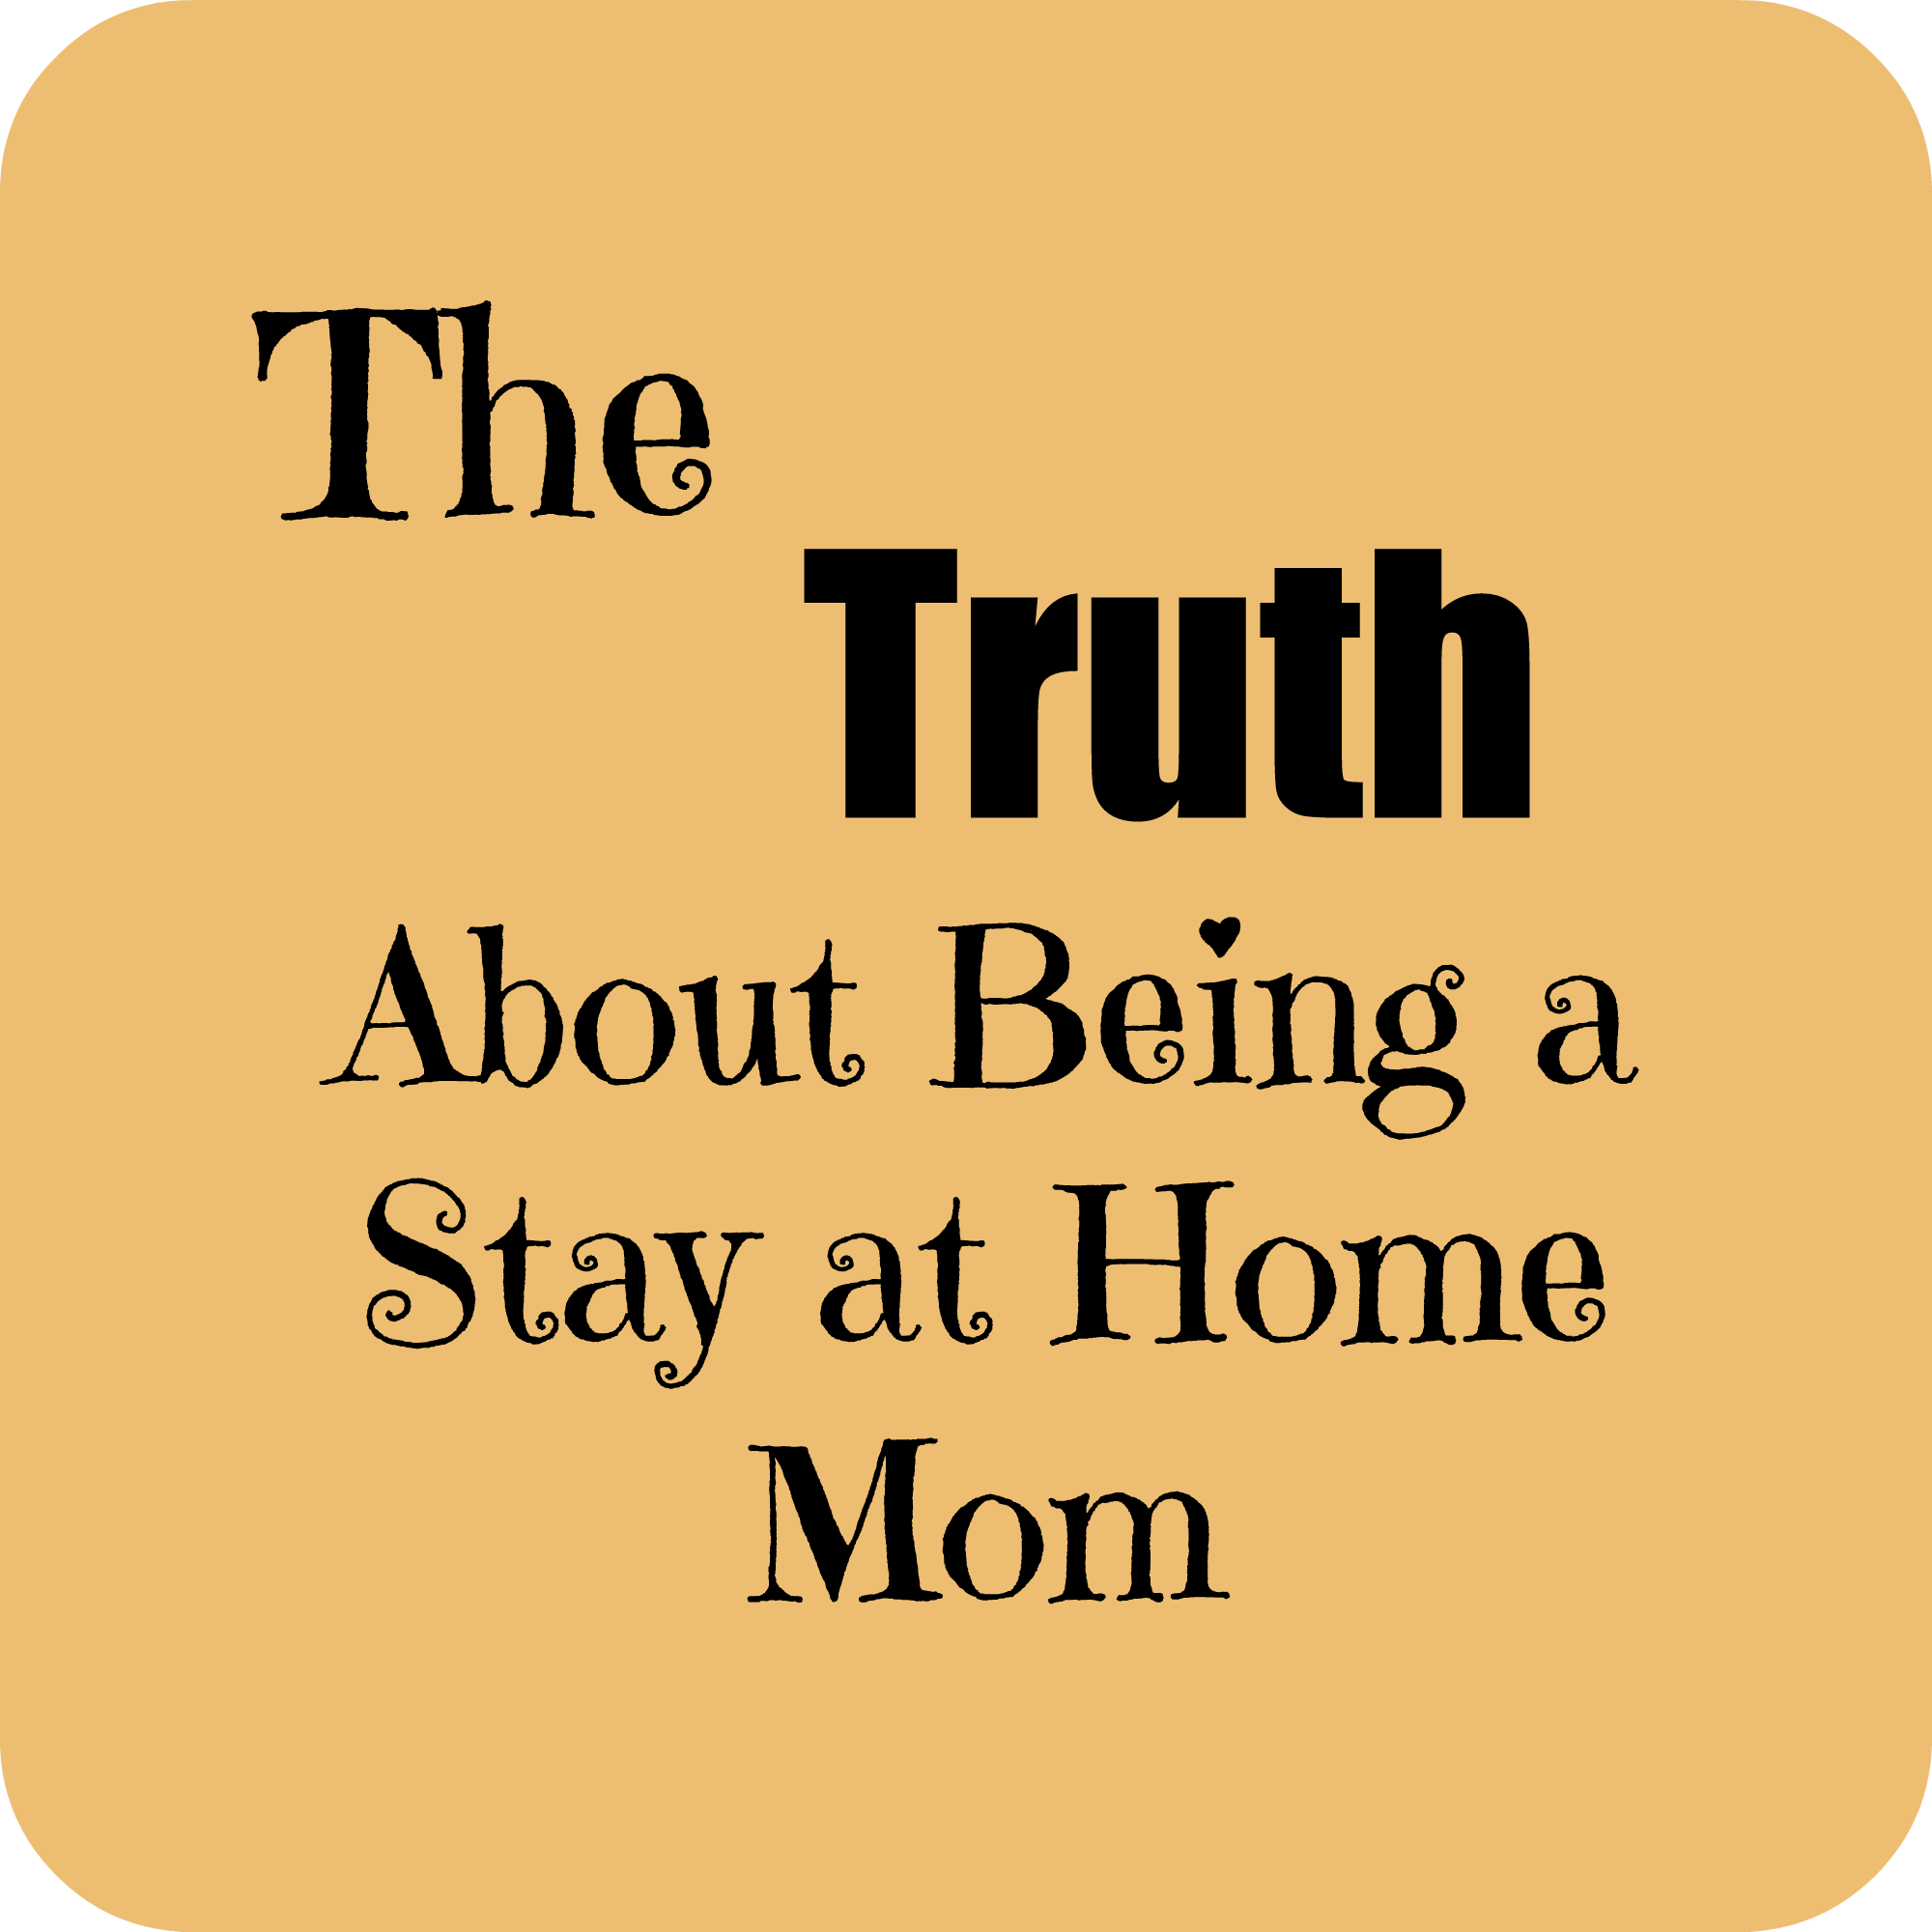 Mother Quotes Images About Staying Home. QuotesGram